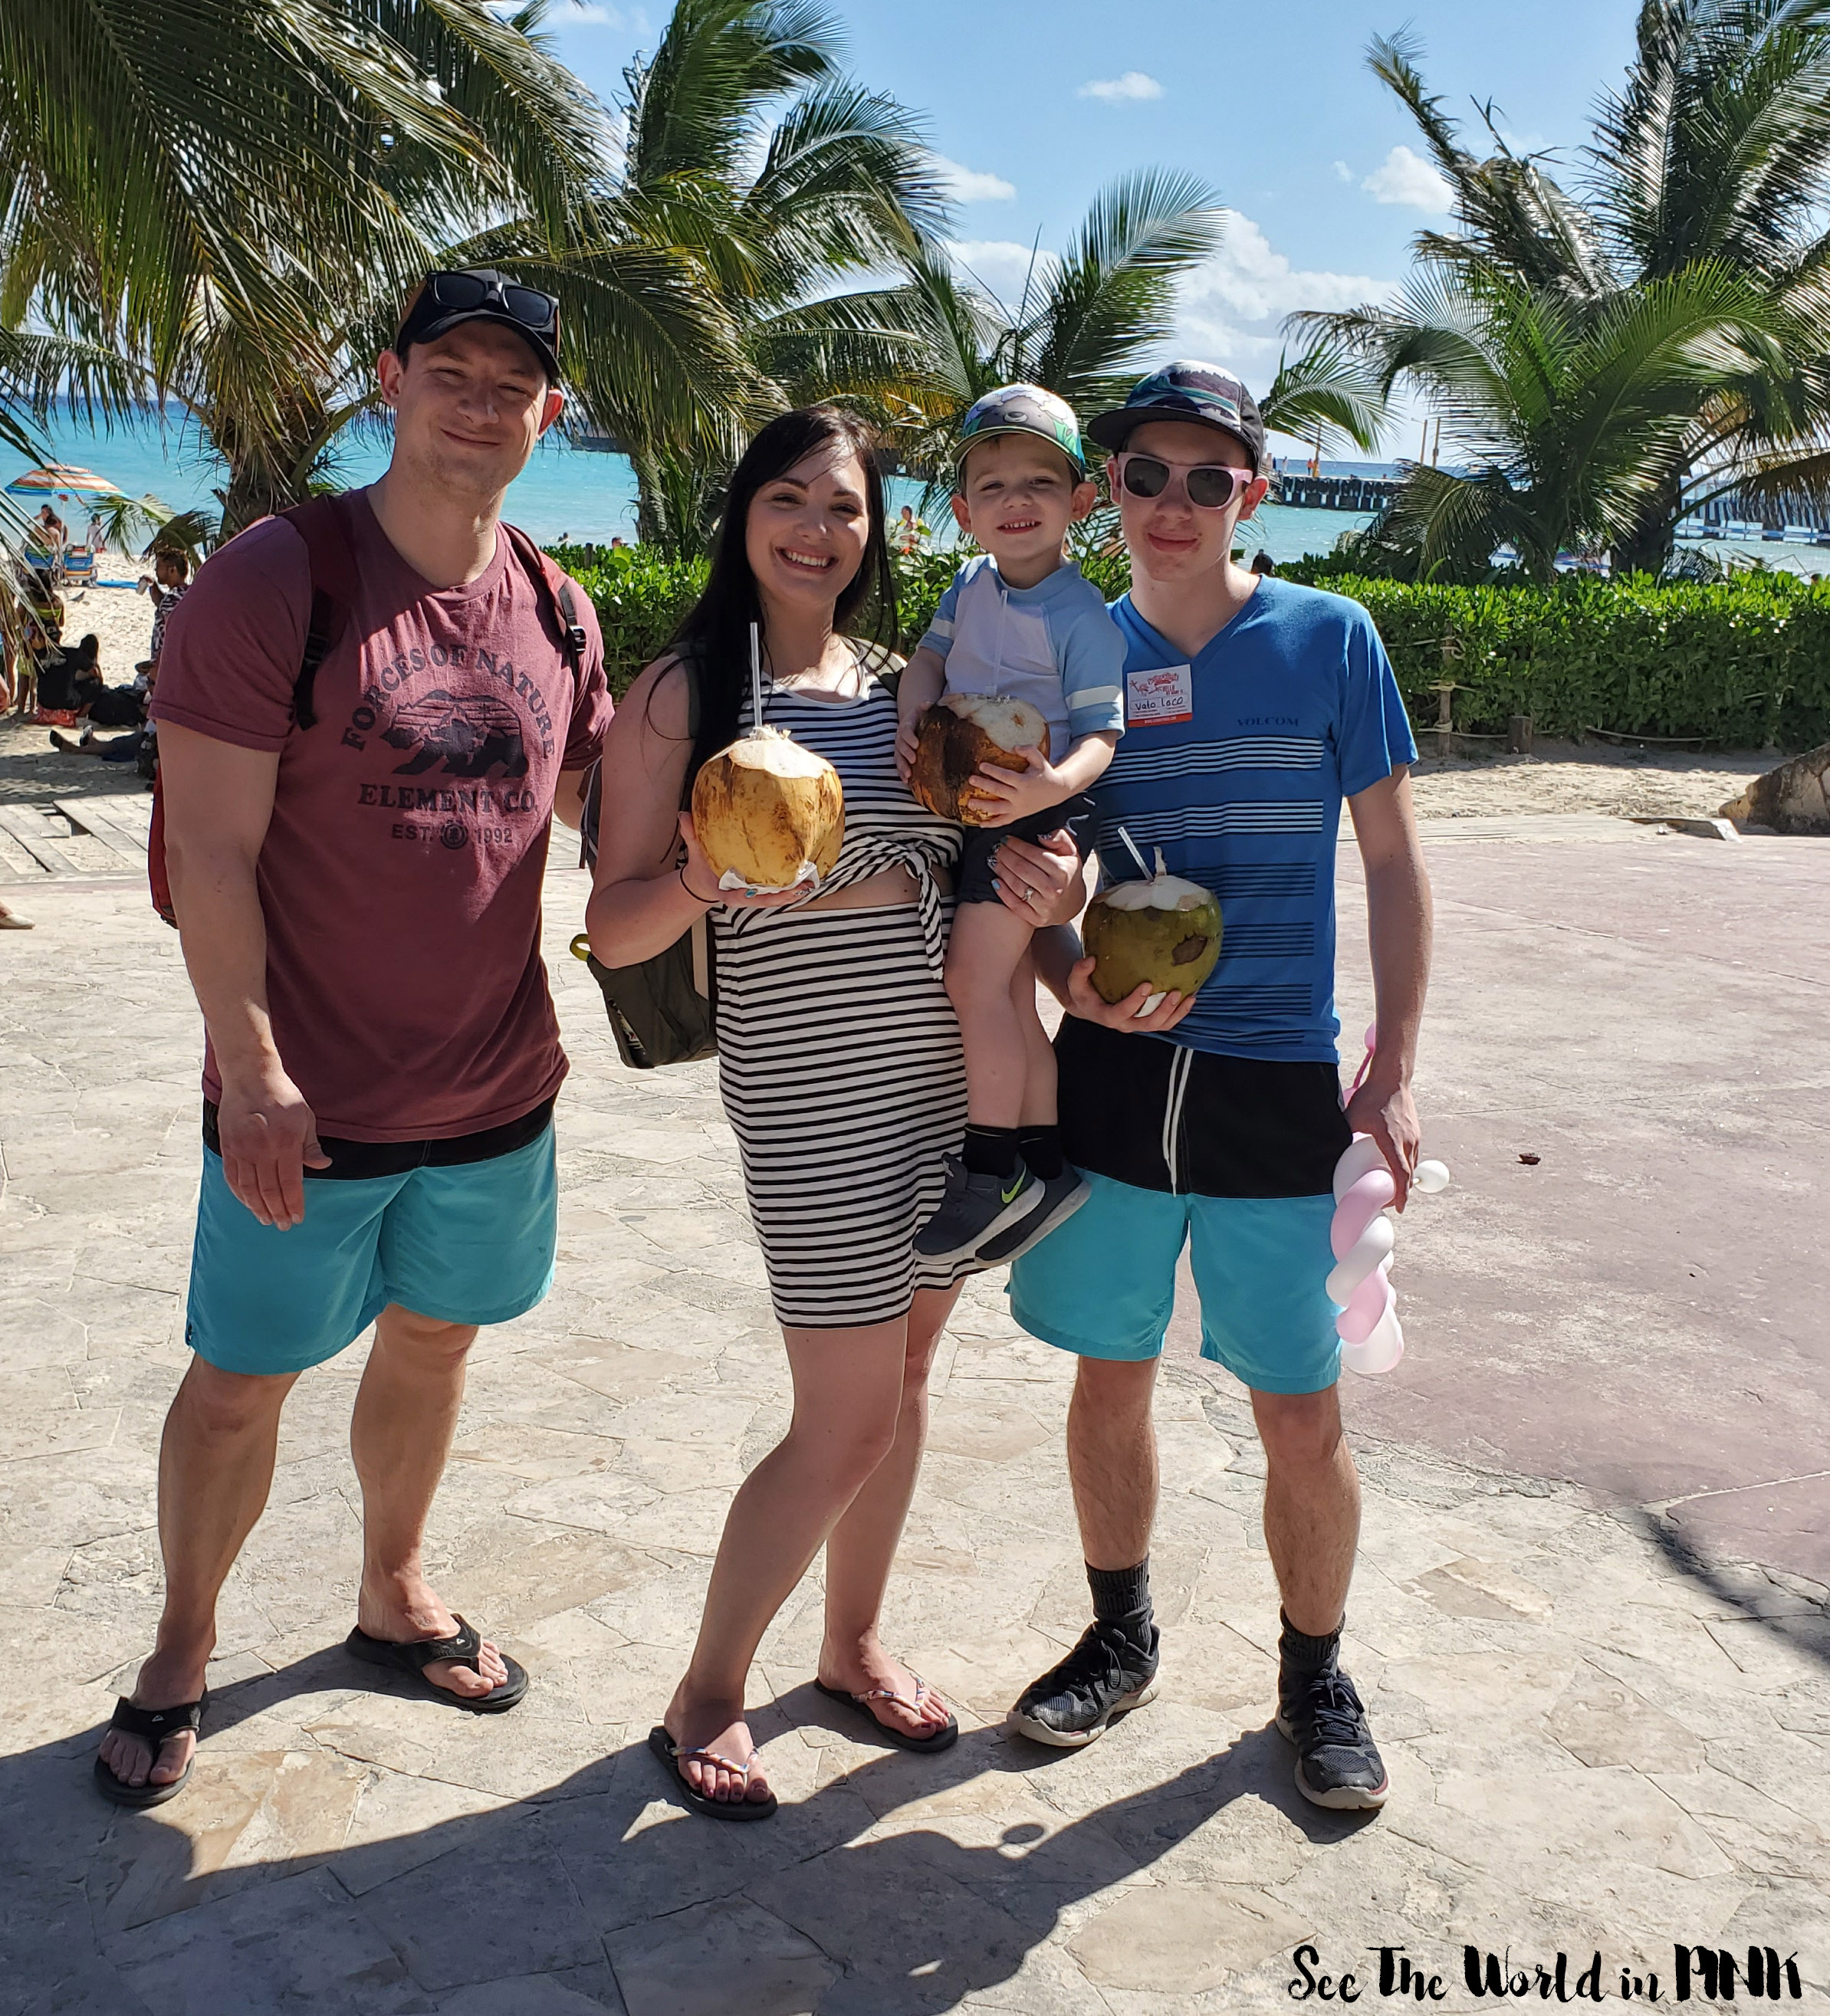 Travel Post - Playa Del Carmen Mexico with a Big Group and Toddlers!